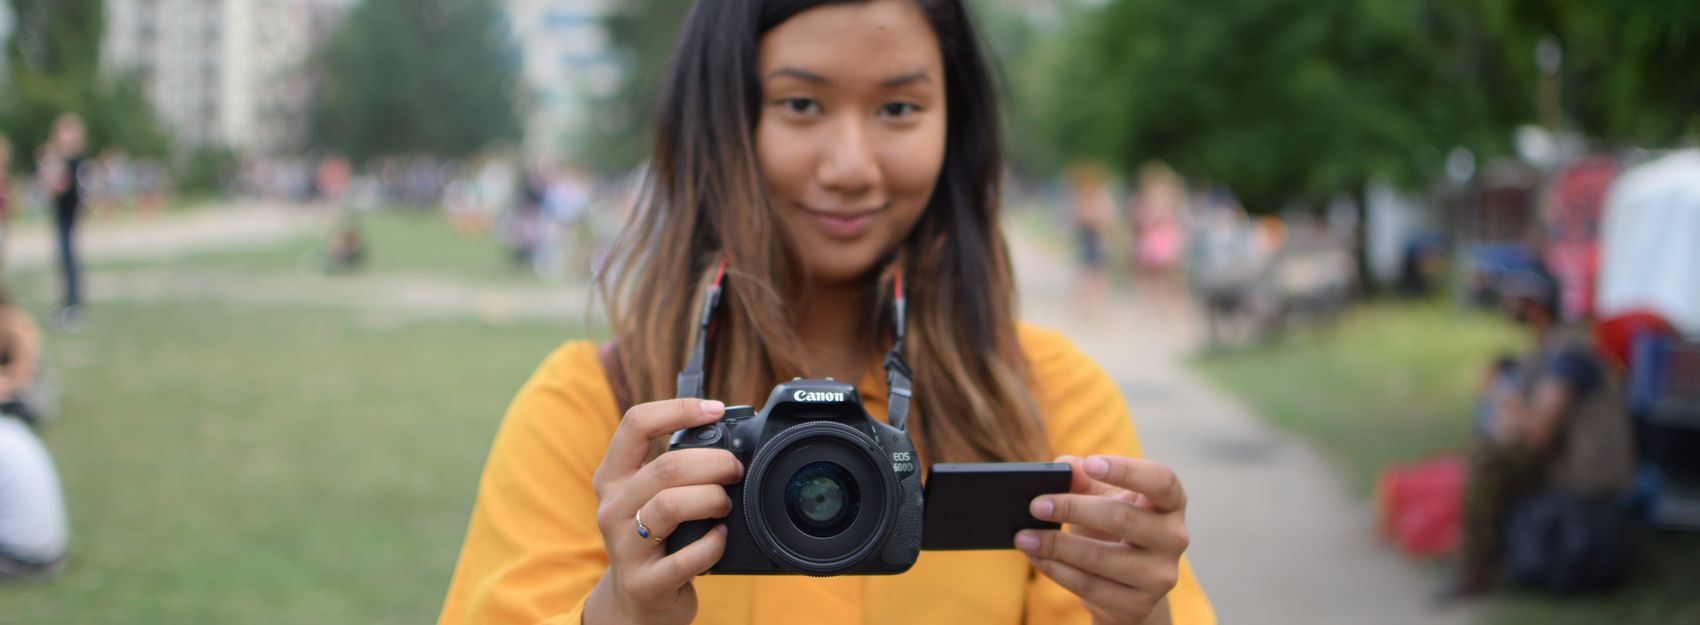 student in yellow shirt holding a camera